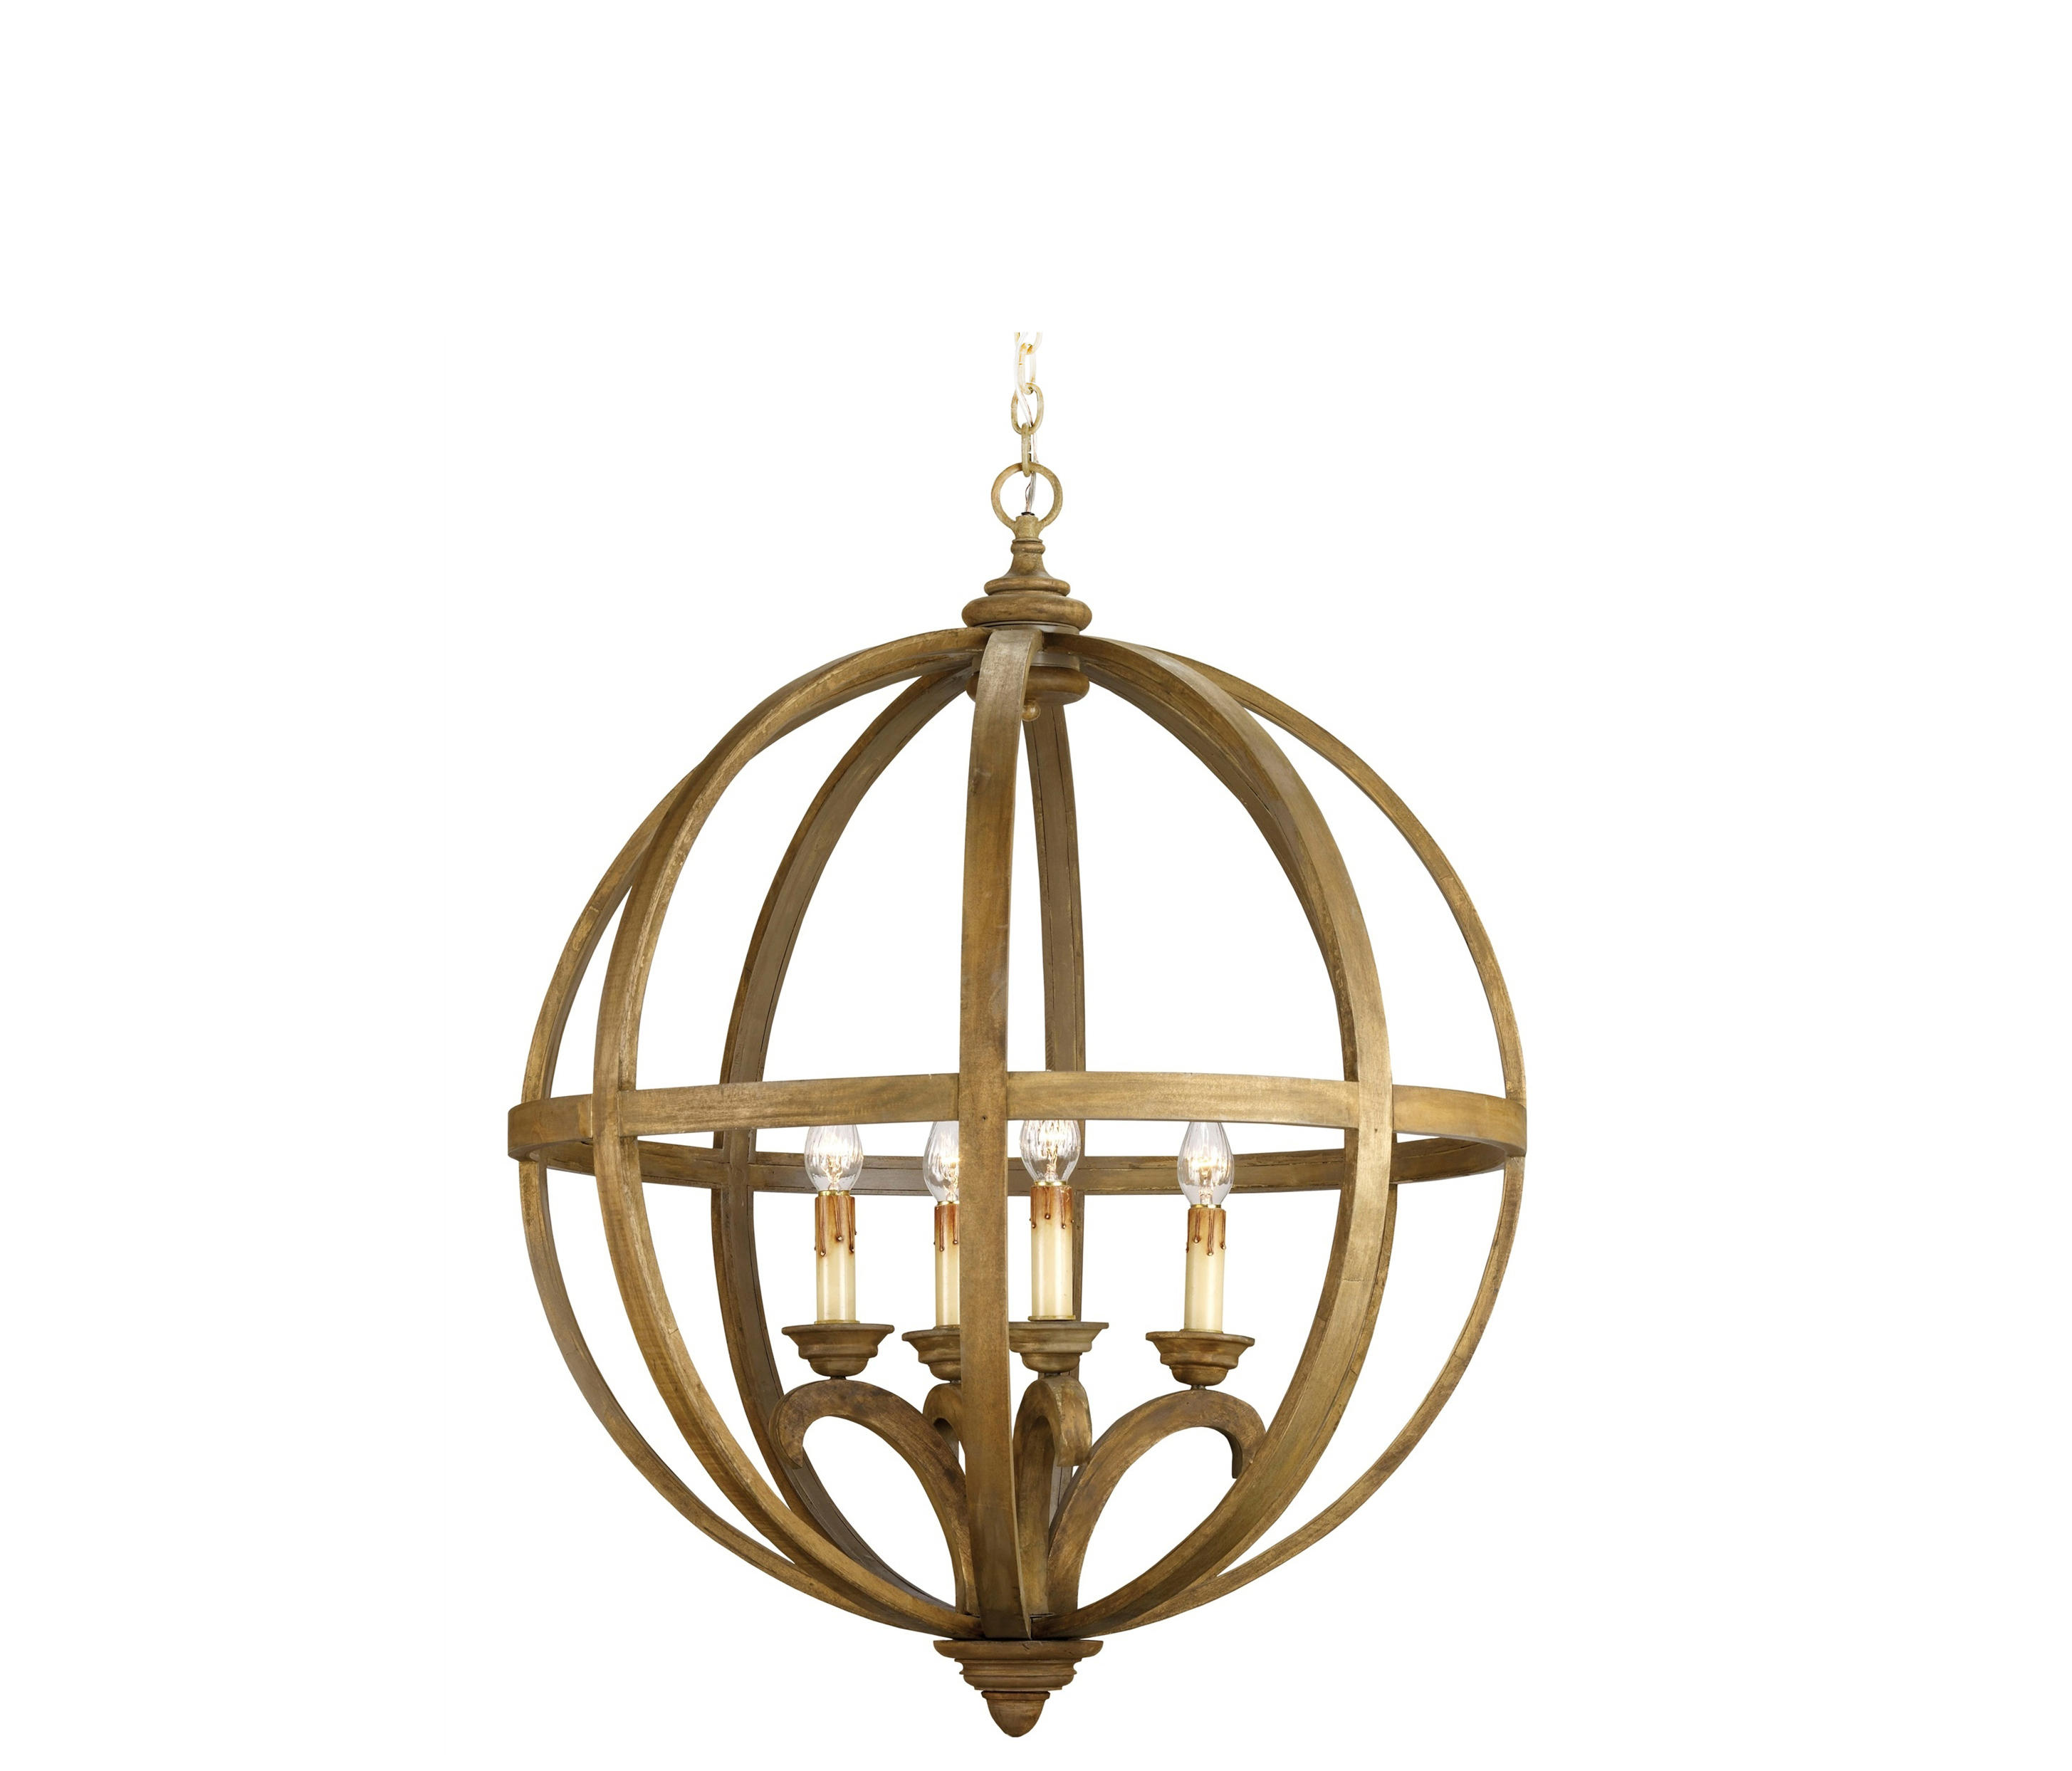 Axel Orb Chandelier Large Architonic